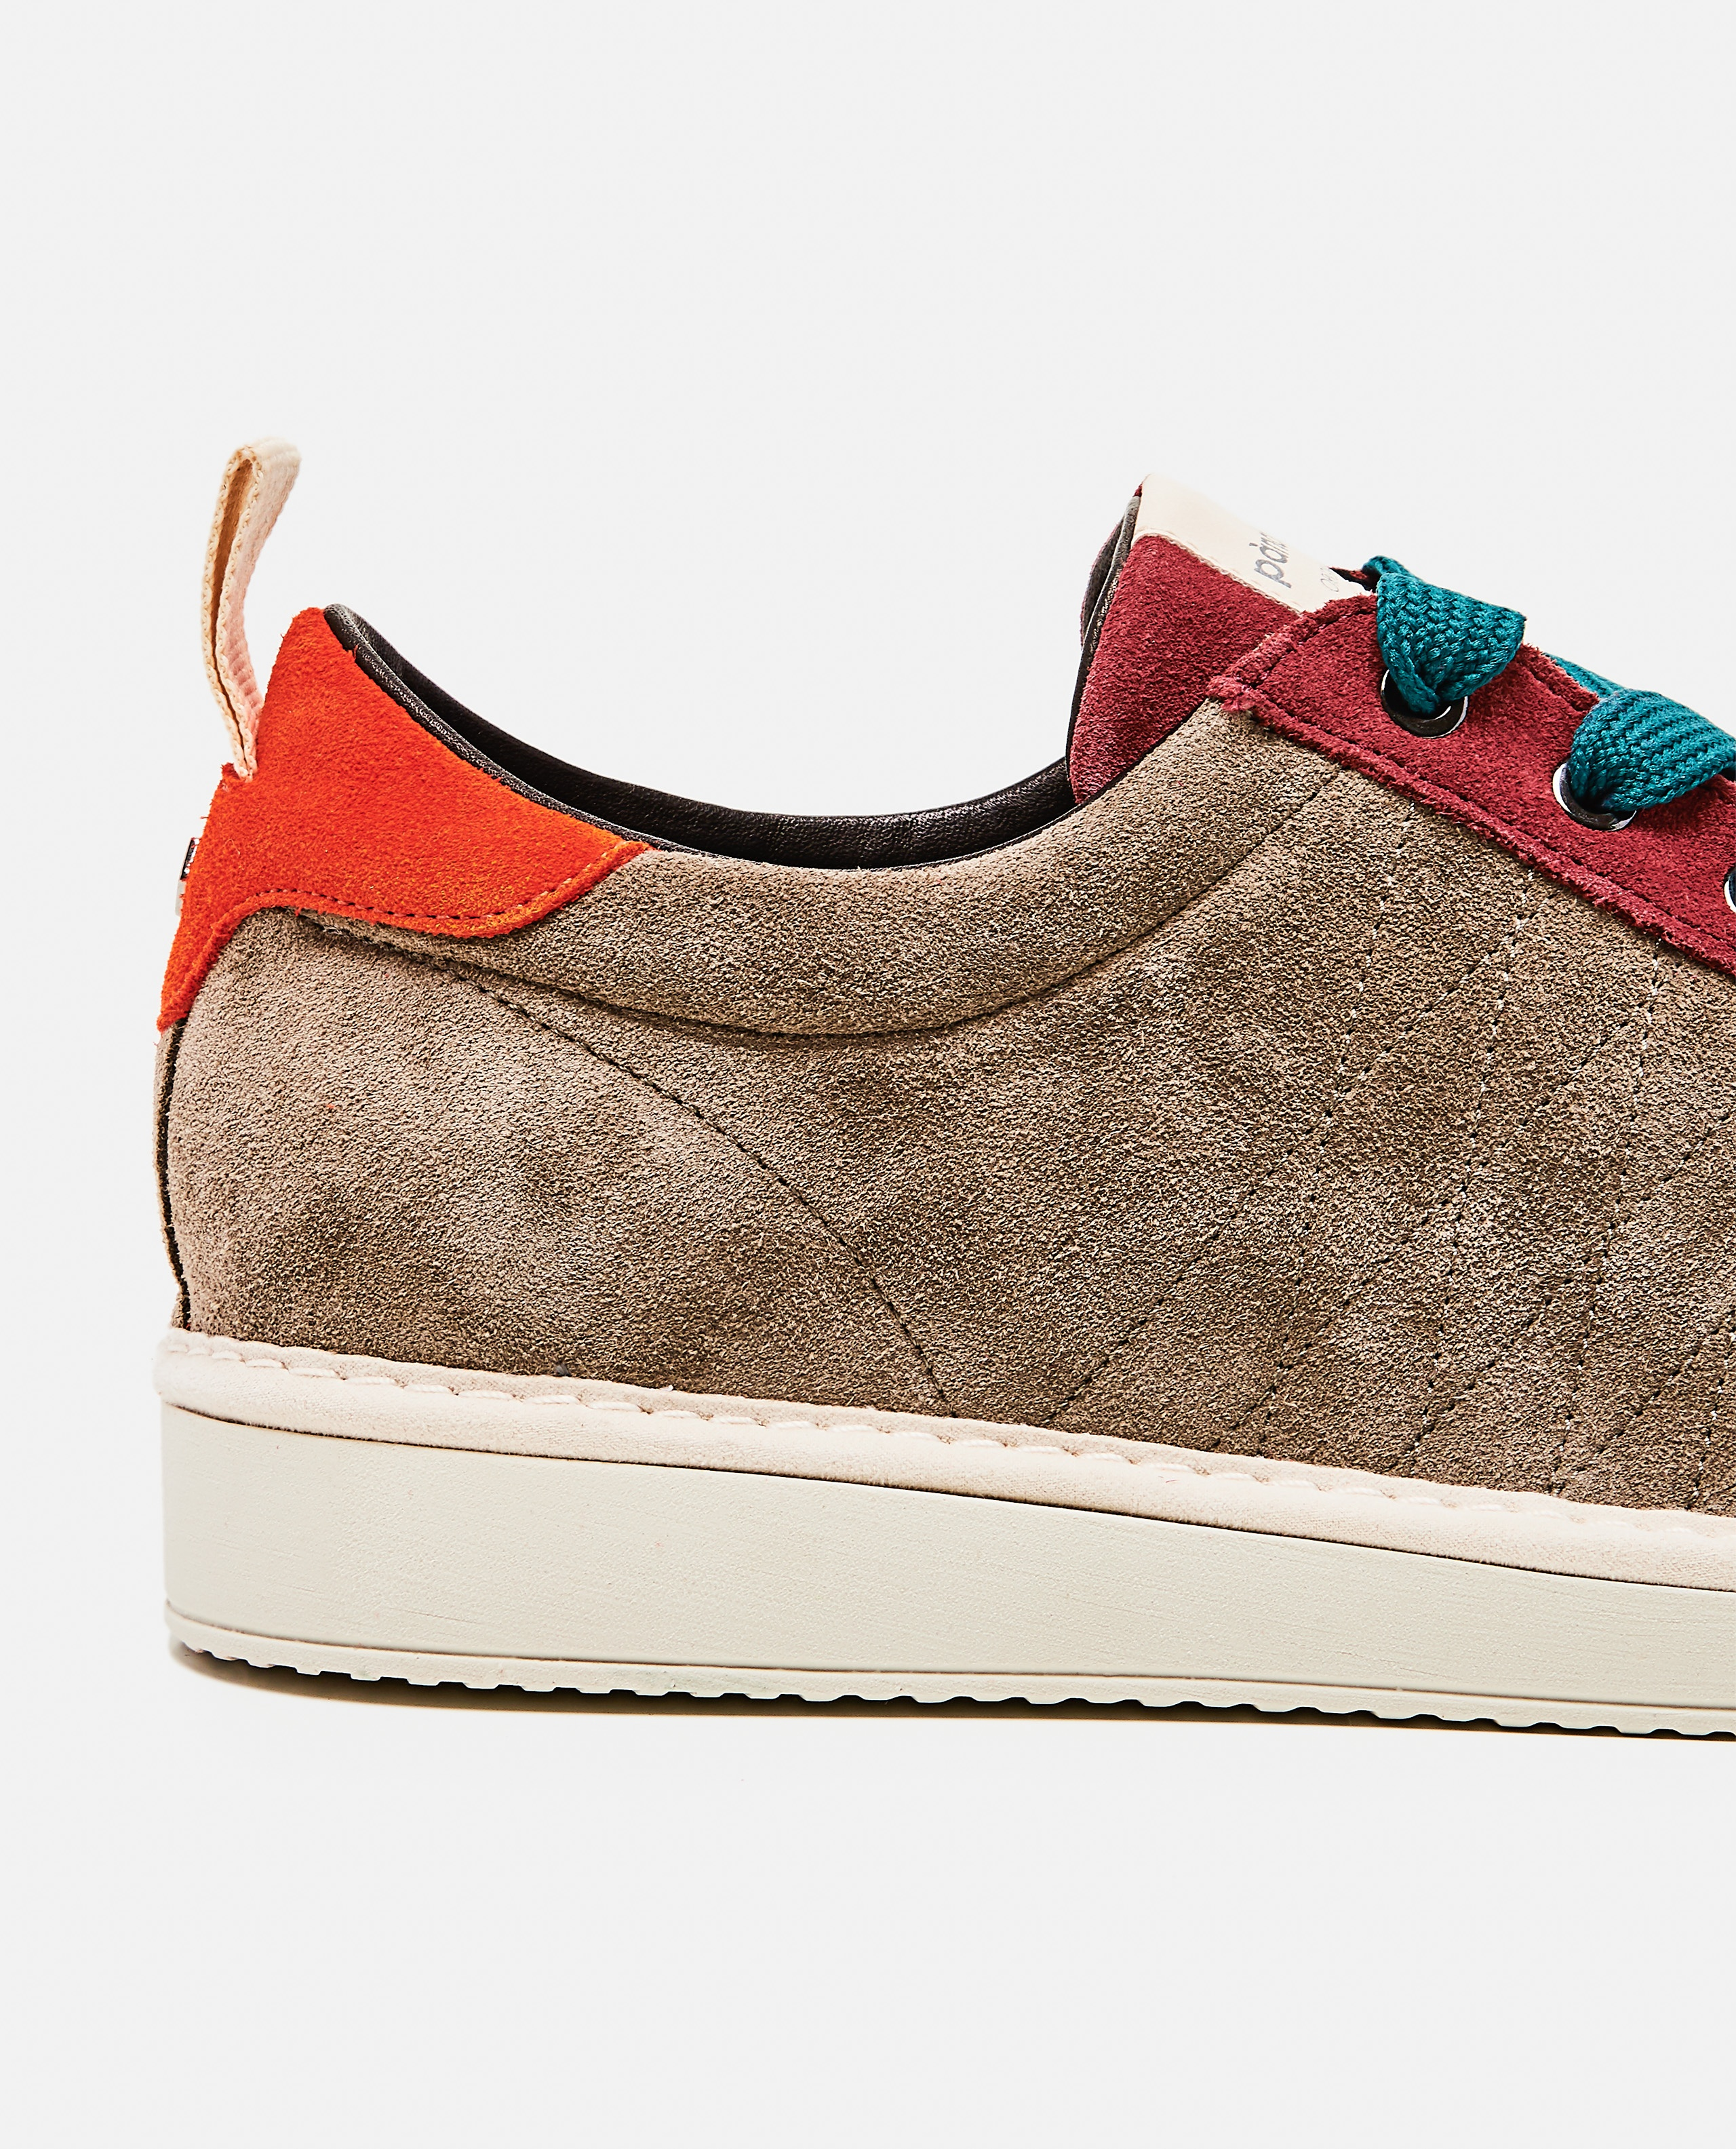 Sneakers in pelle Uomo Panchic 000278450041046 4